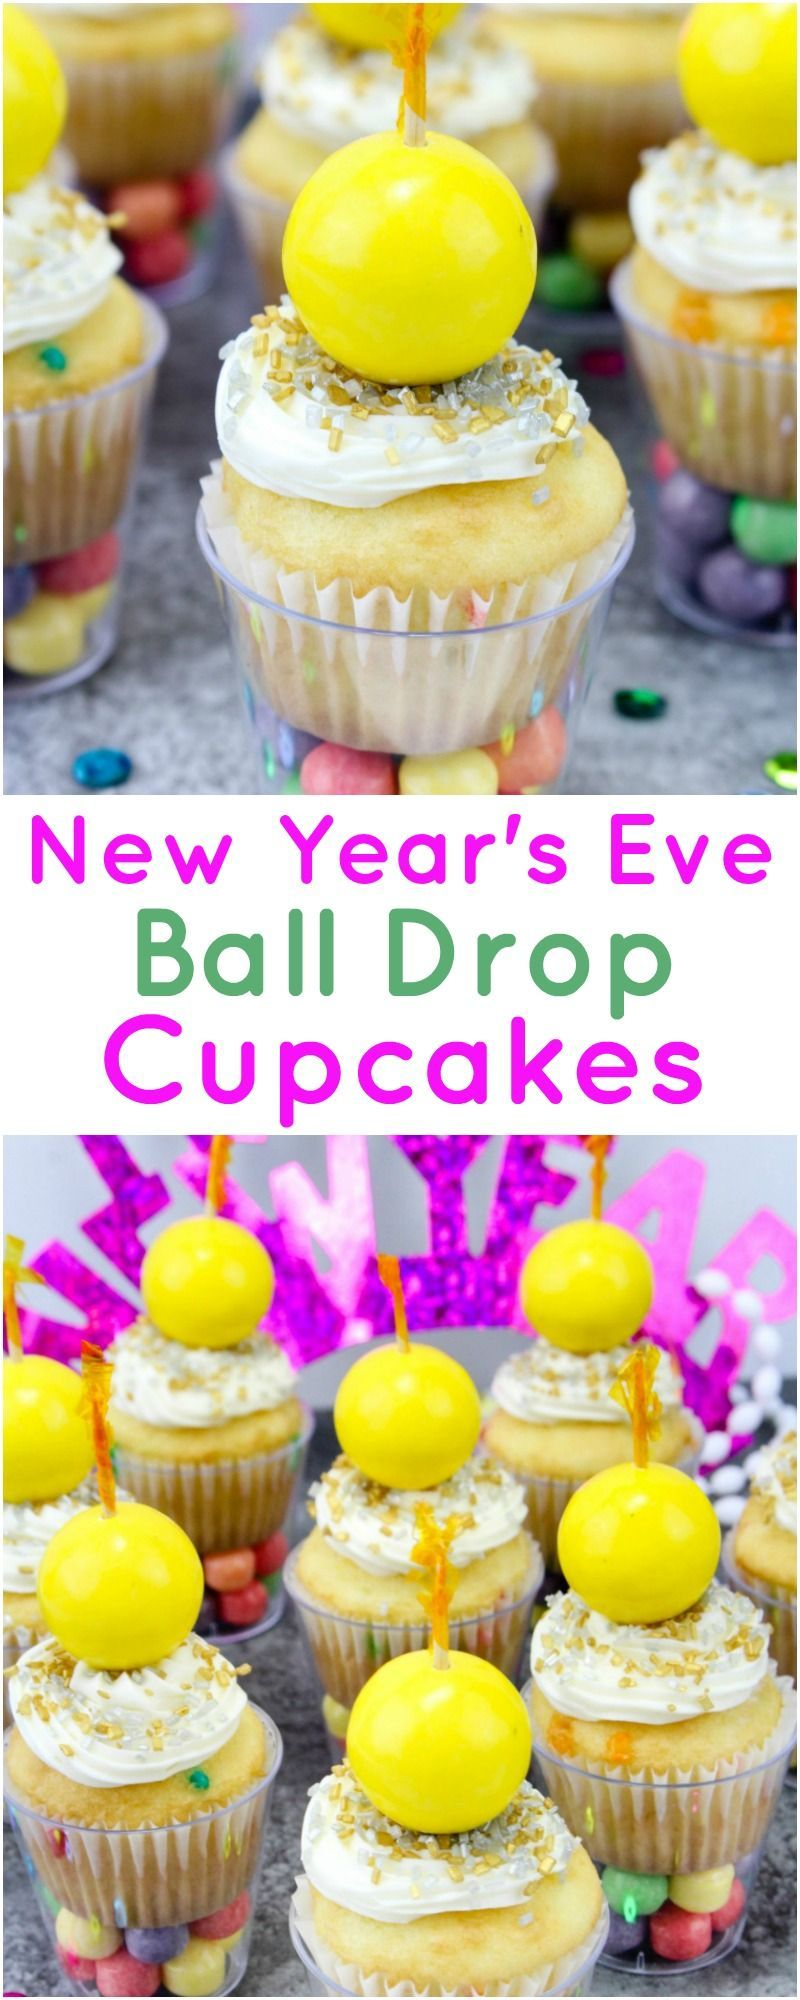 New Year's Eve Ball Drop Cupcakes | New years eve dessert ...